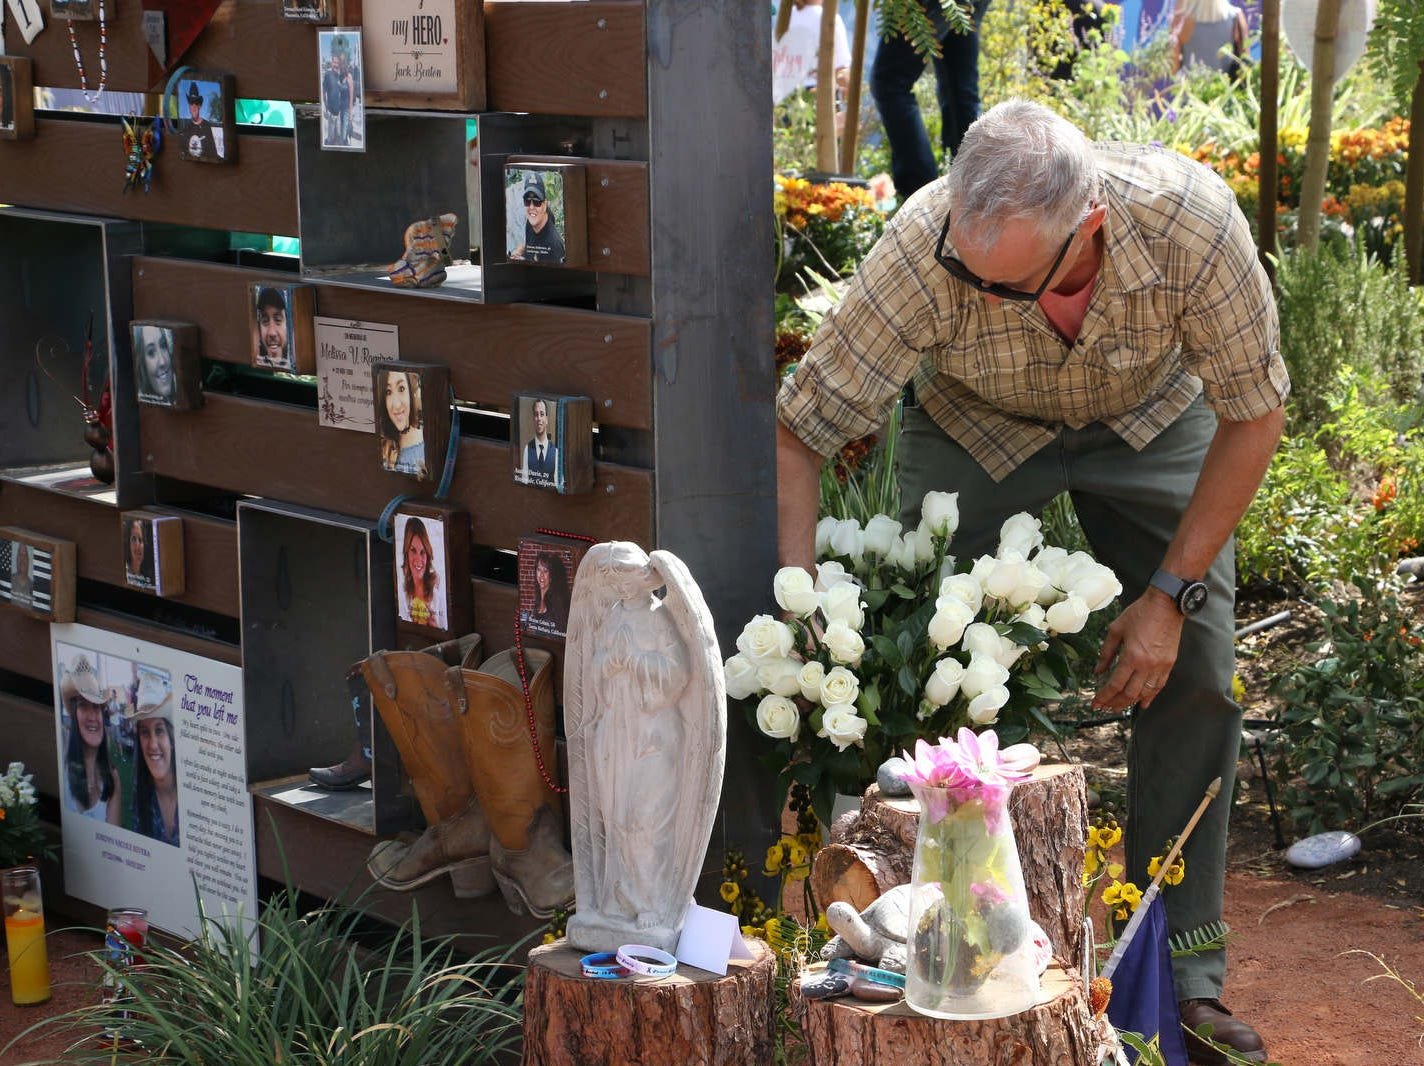 Las Vegas remembers the mass shooting one year later on Oct. 1, 2018.  People gather to pay their respects at the Las Vegas Healing Garden.